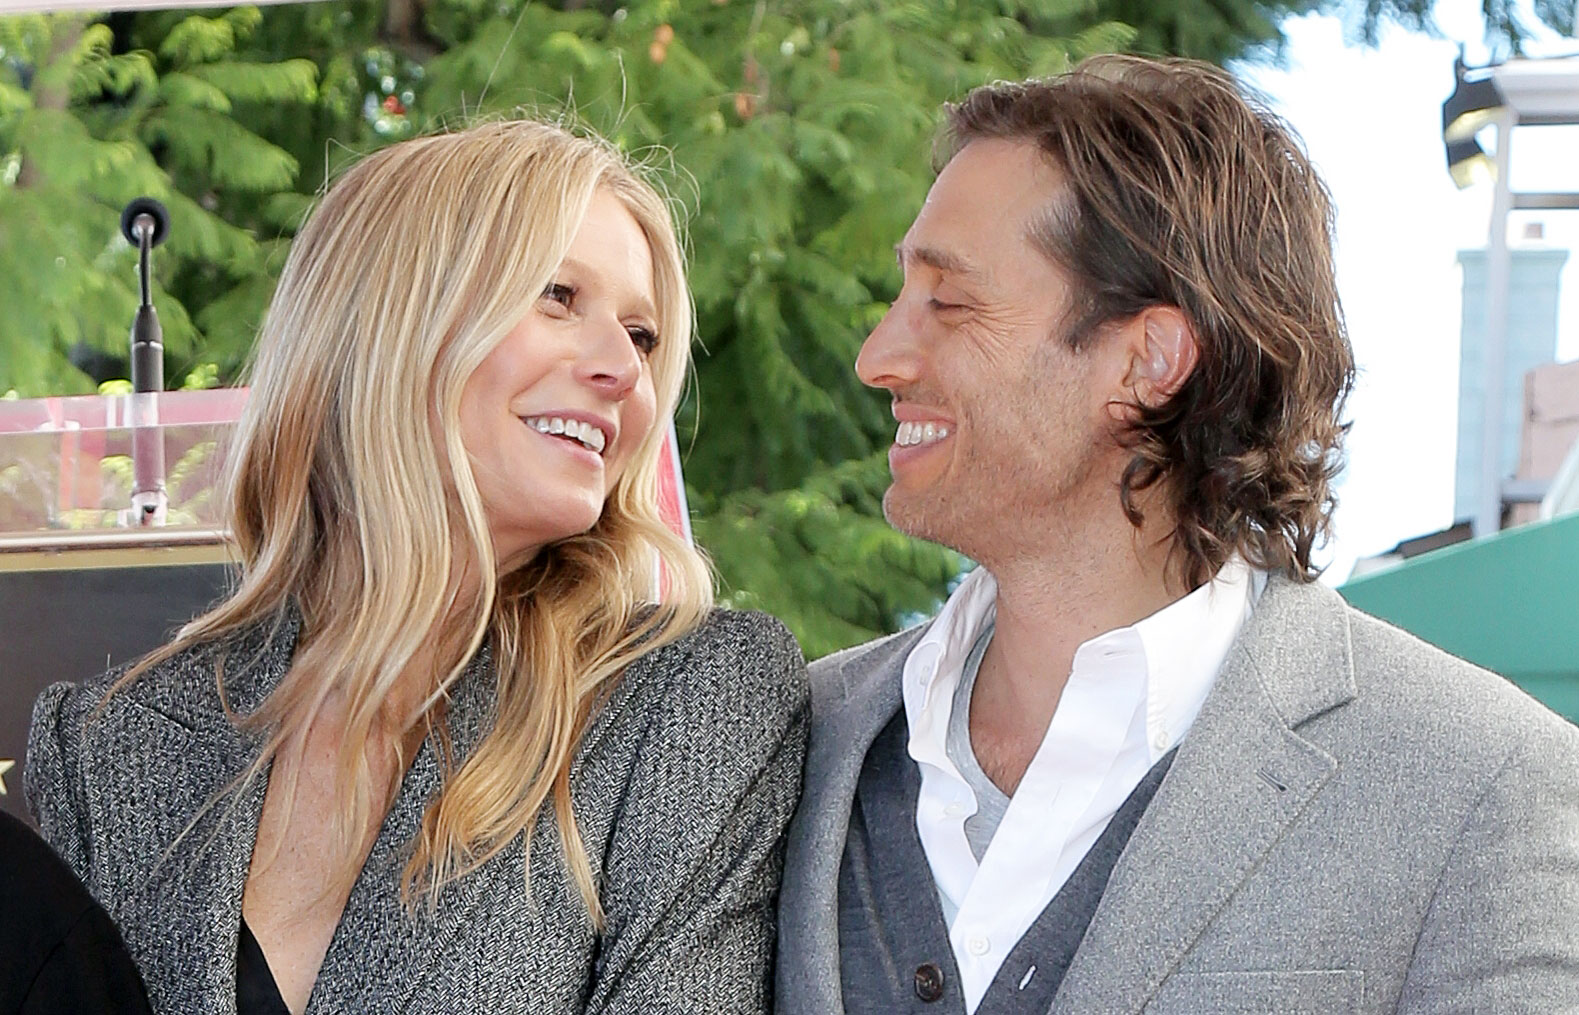 Blythe Danner Gwyneth Paltrow Brad Falchuk Having A Great Time